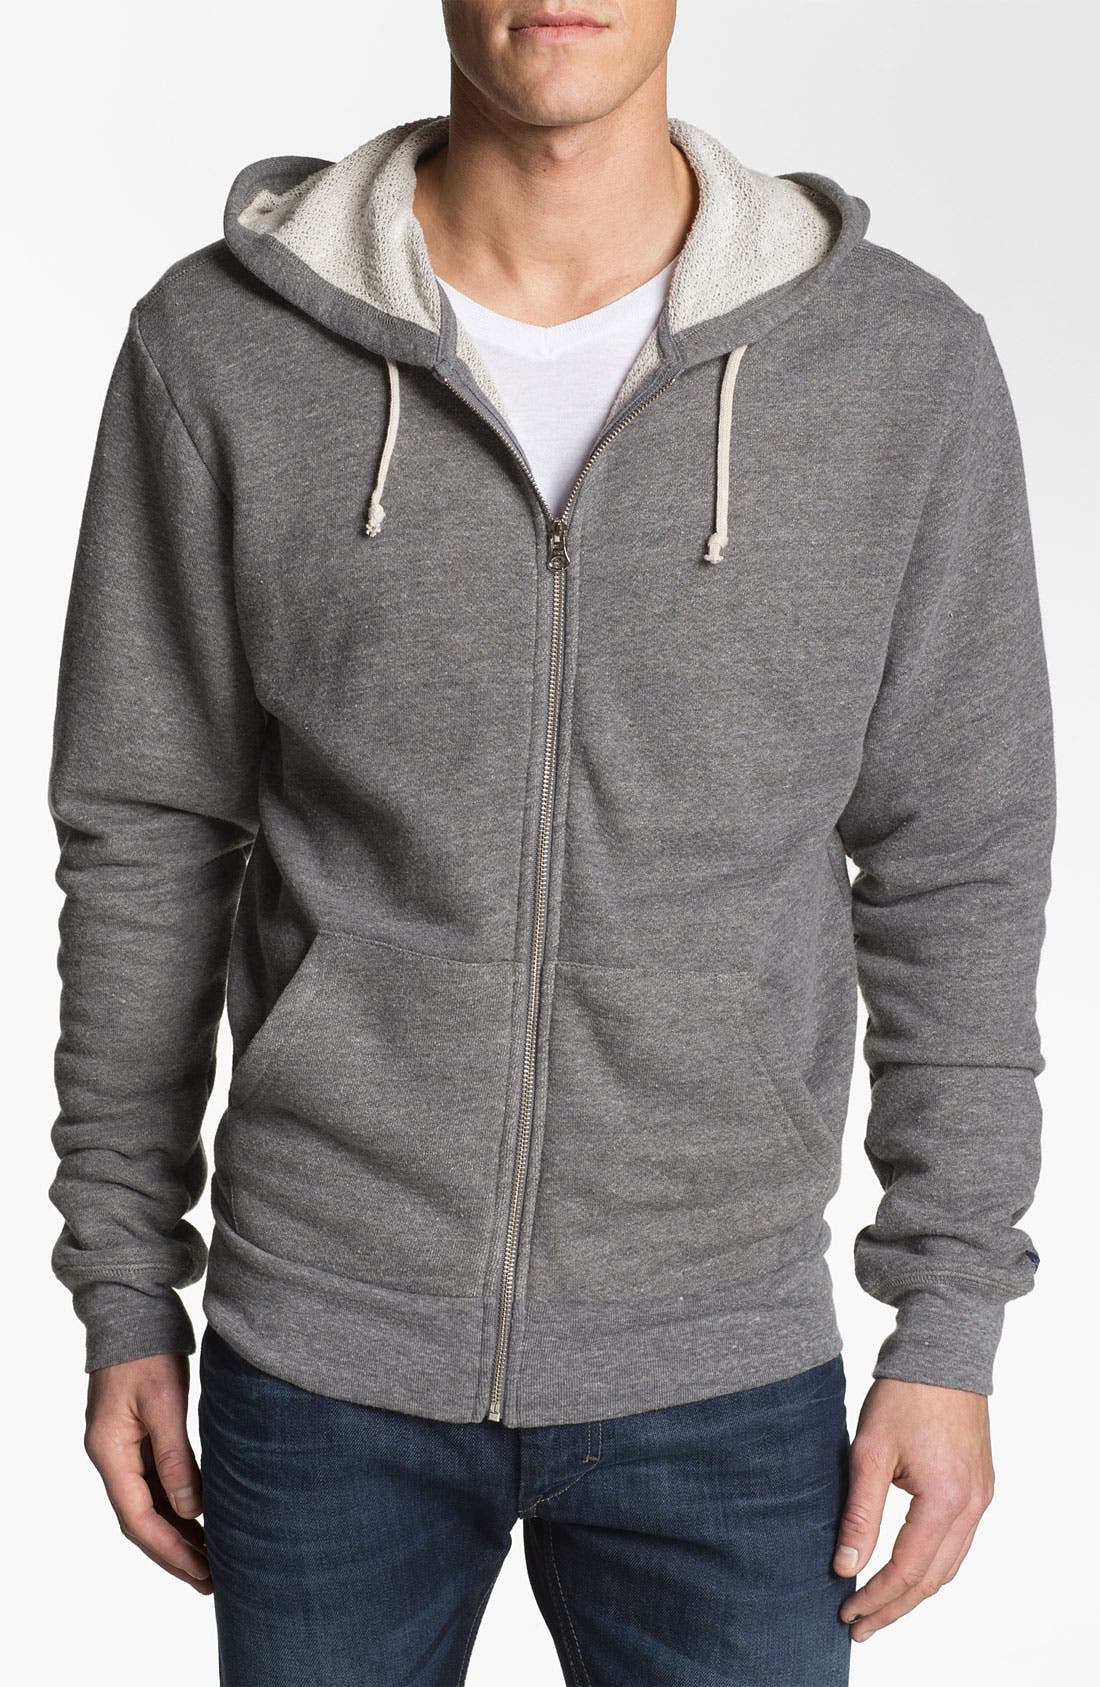 Alternate Image 1 Selected - The North Face 'Cape River' Hoodie